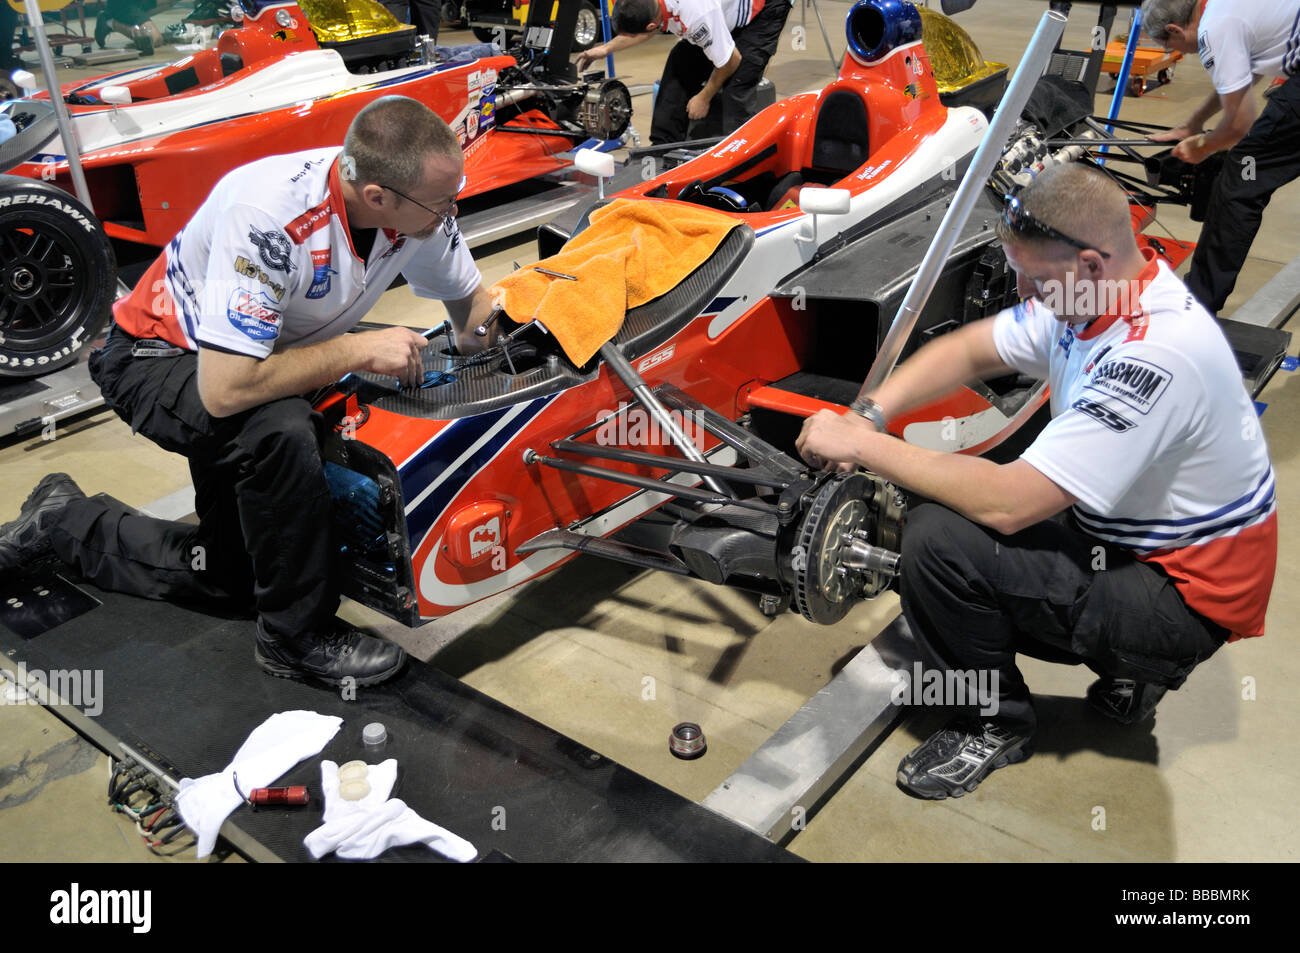 Mechanics at work on colorful Indy race cars - Stock Image